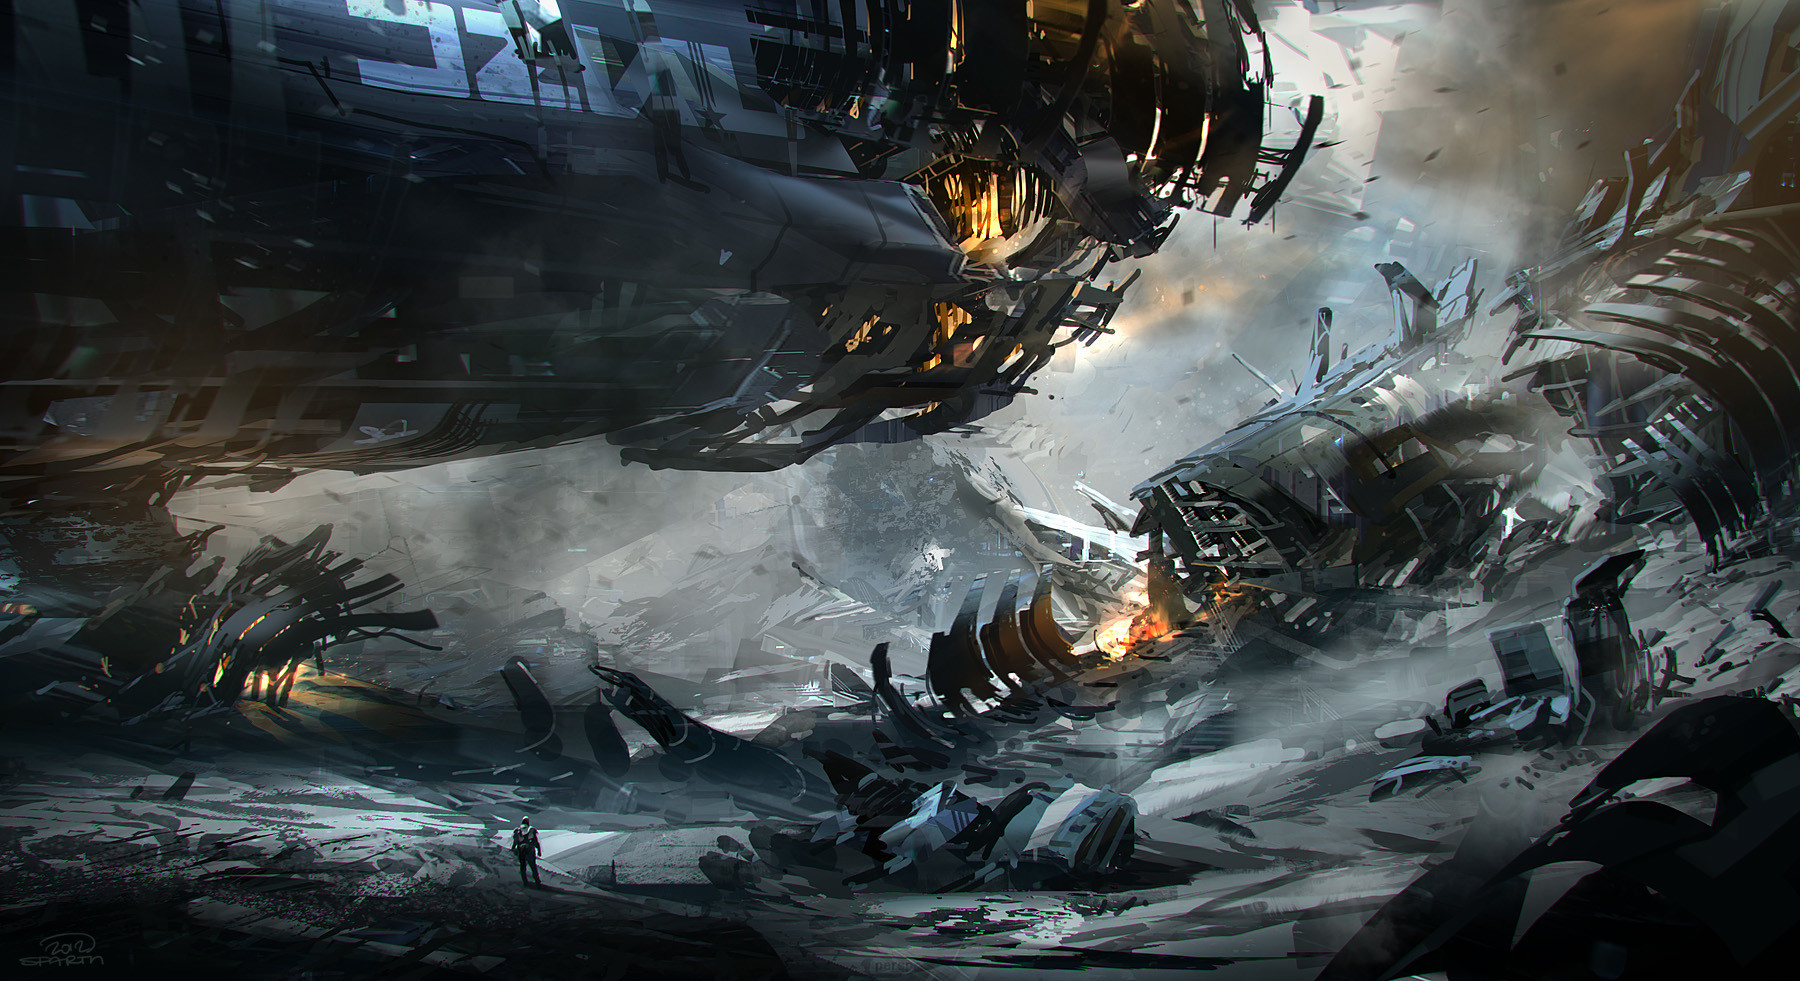 Sparth nicolas bouvier crashsite final final small